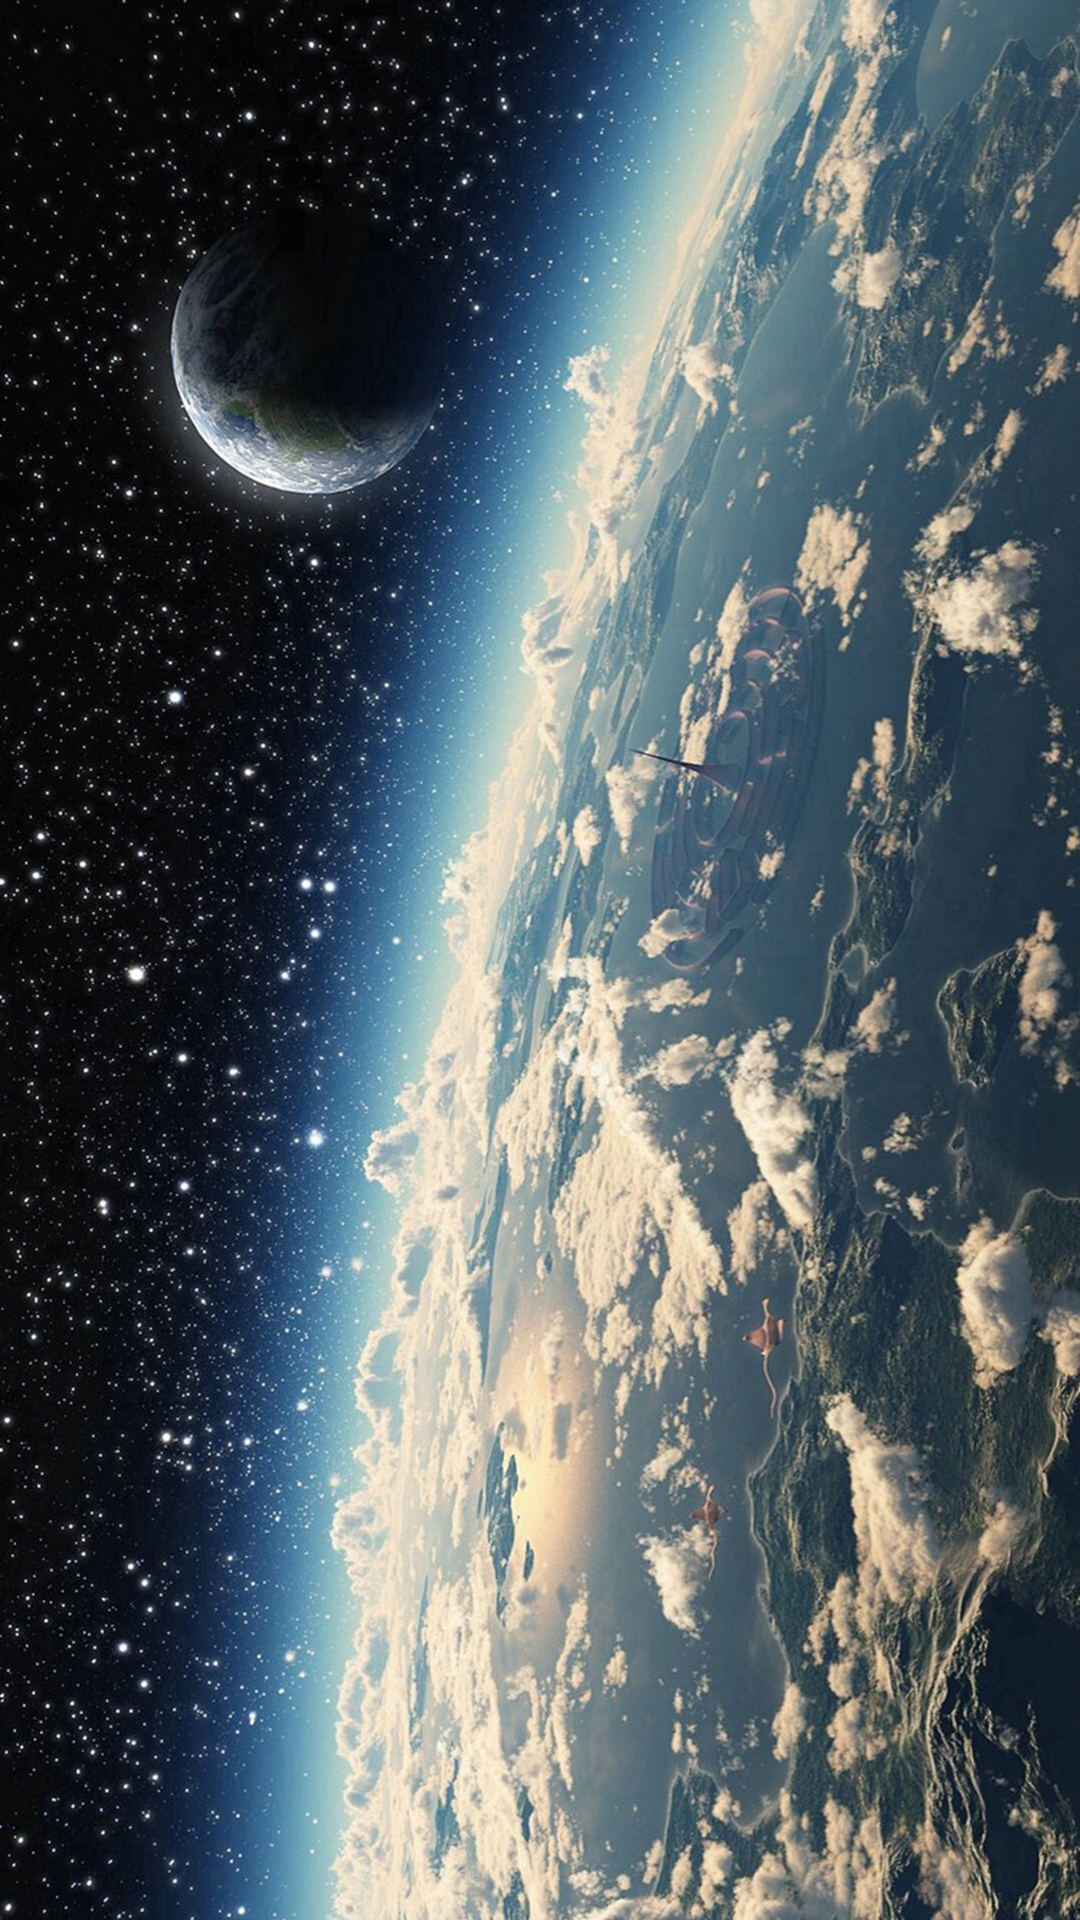 Space-Cosmos-Planet-Star-iPhone-6-plus-wallpaper | iDevice.ro